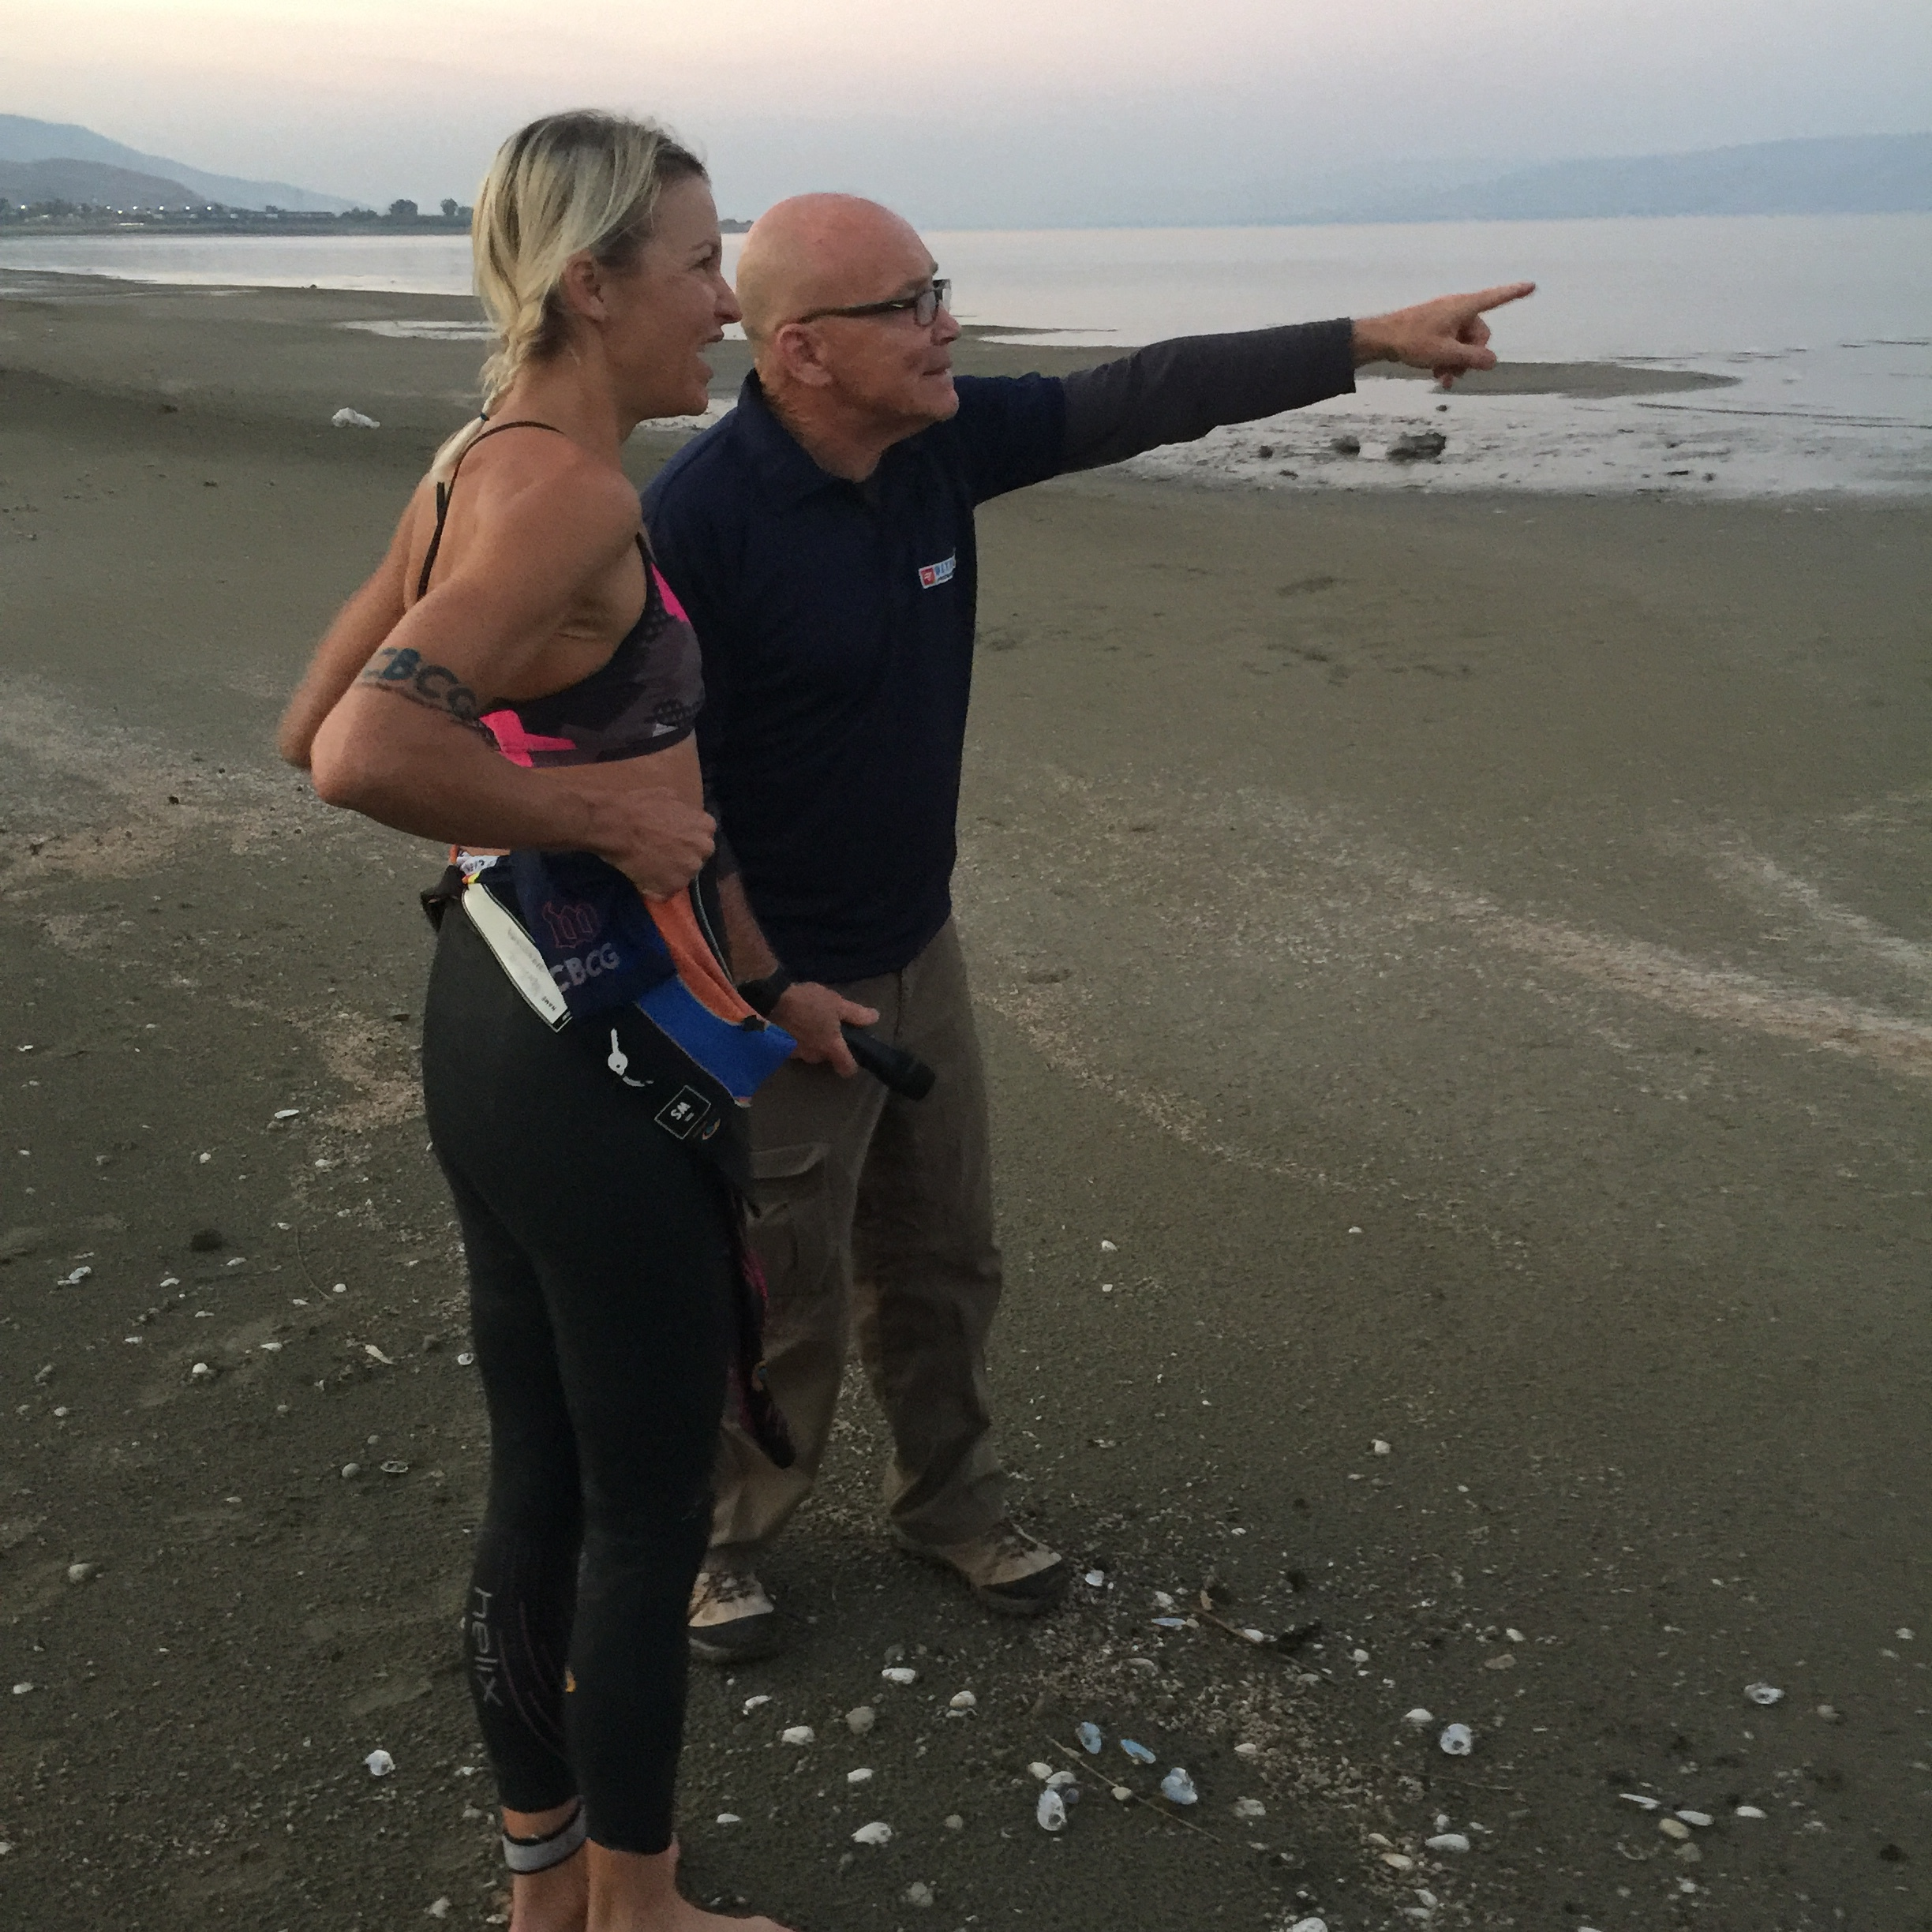 Coach_Terry_Wilson_Pursuit_of_The_Perfect_Race_Ultram_Isereal_Amy_VT_Overall_Winer_Pre_Reace.JPG